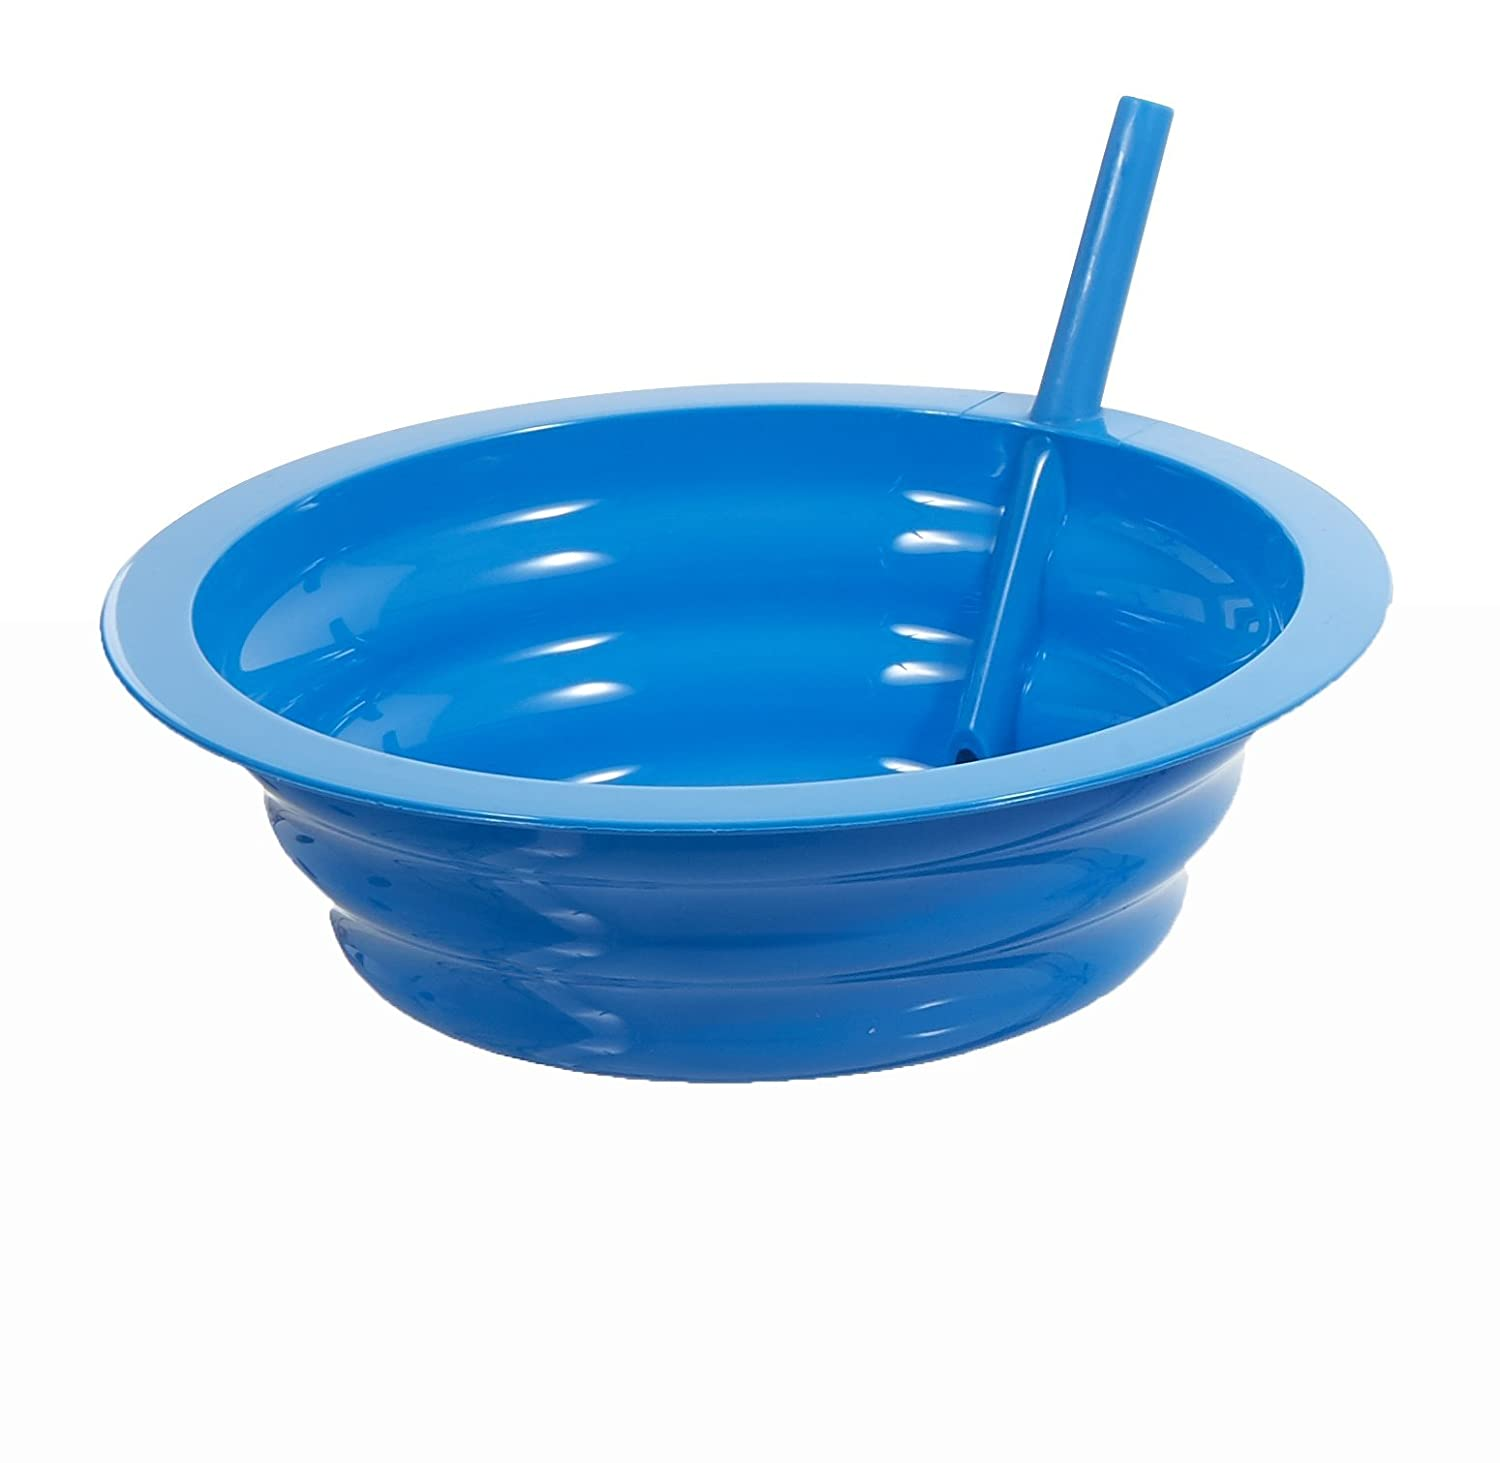 Sip-A-Bowl Cereal Bowl with Built-in Straw - Colors Vary - Qty:1 (Green, Pink, or Blue) Arrow Home Products 26505